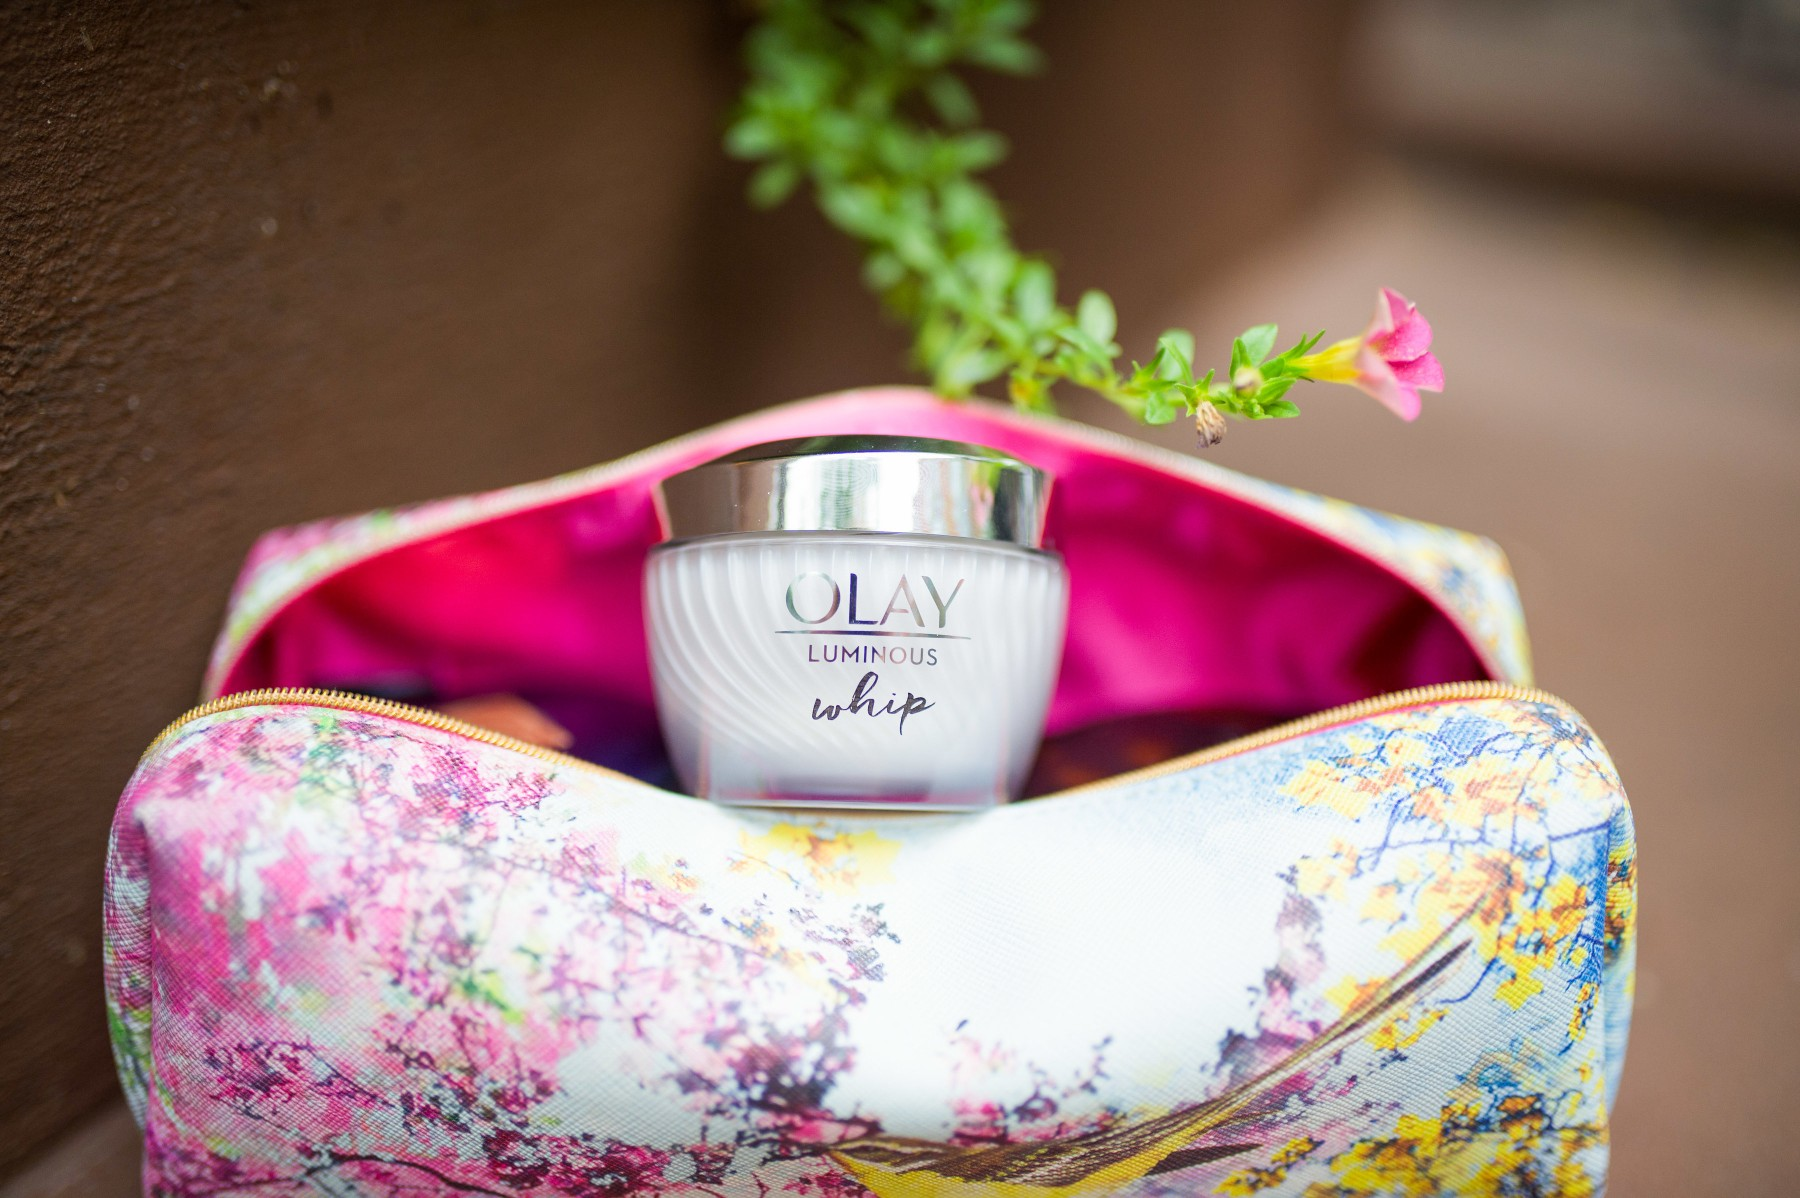 Olay luminous whips review beauty blogger style elixir 2